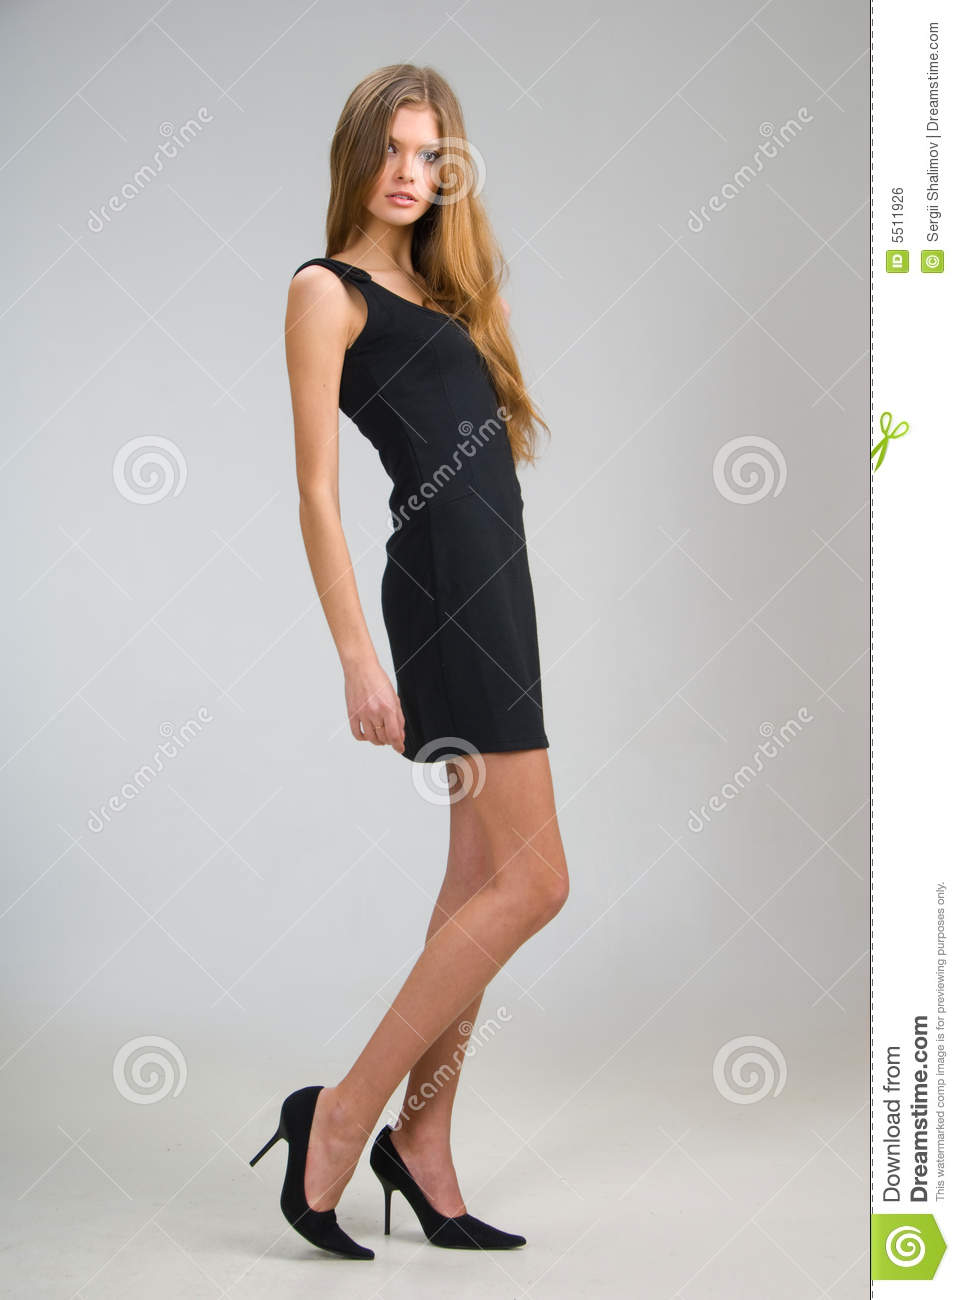 Slim Girl In Black Dress Royalty Free Stock Image Image